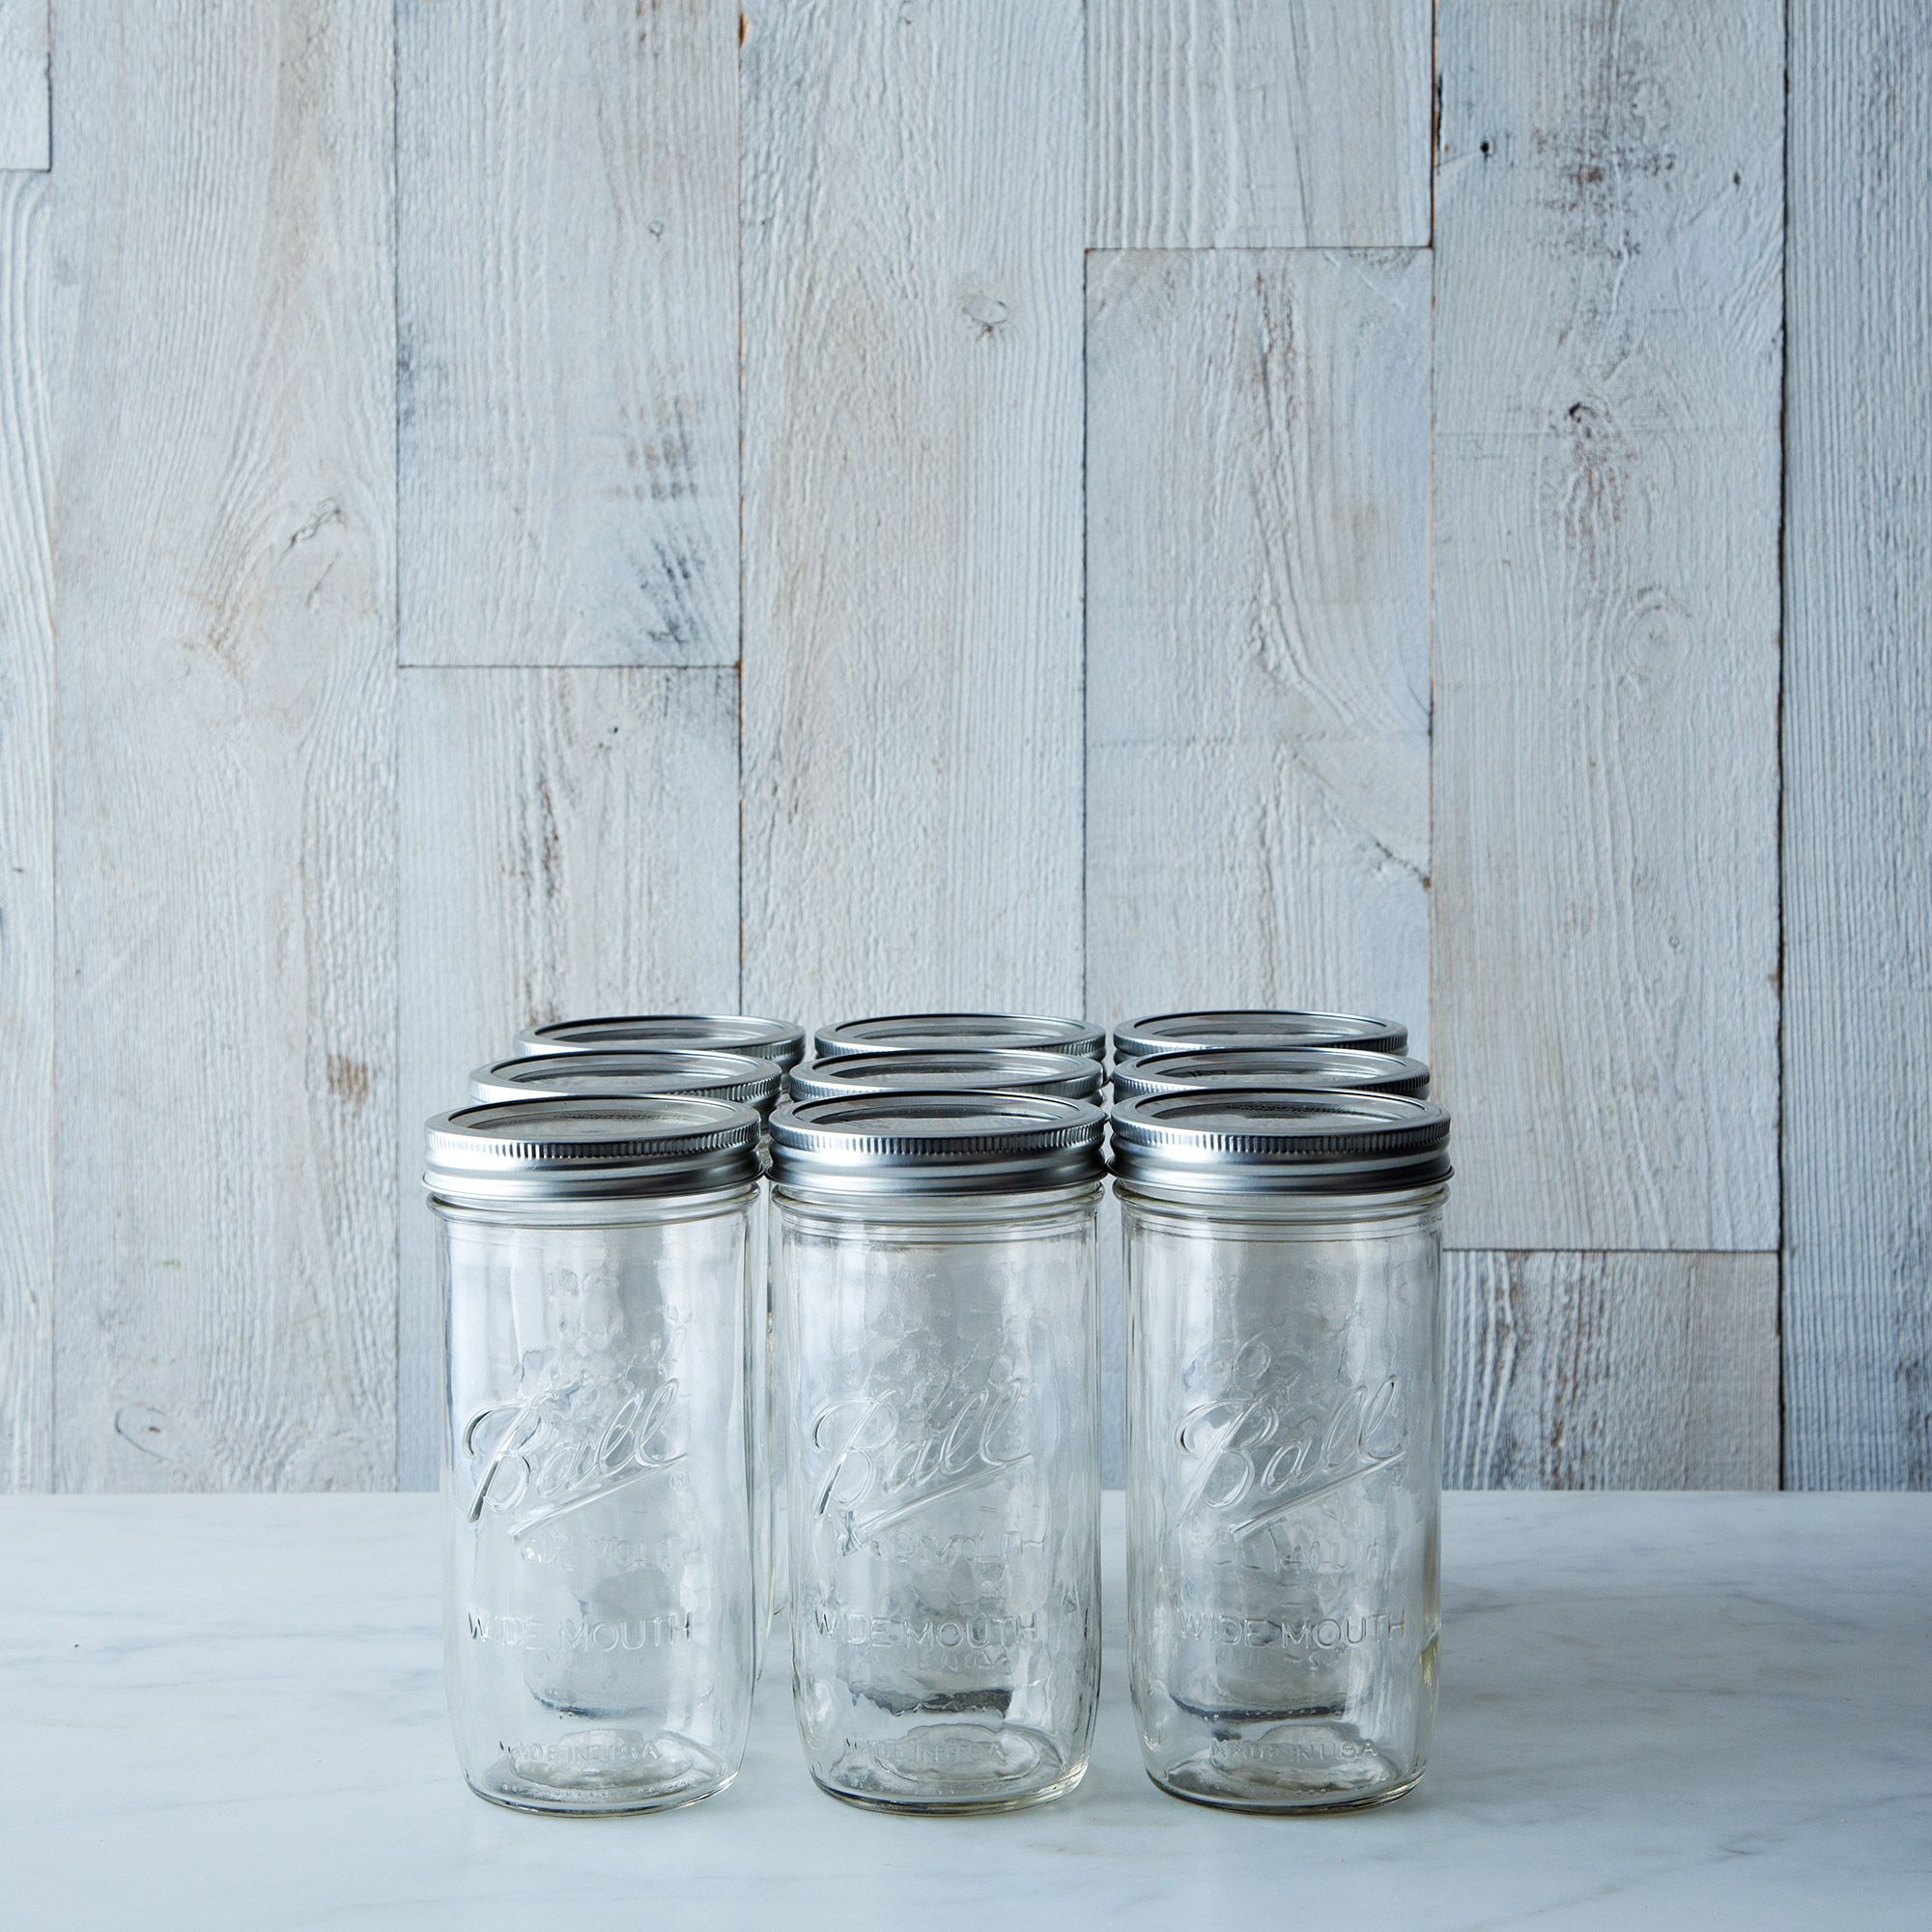 E155fb89 082f 4fbf a4af 44d98594963c  2013 0823 wide mouth mason jars 008